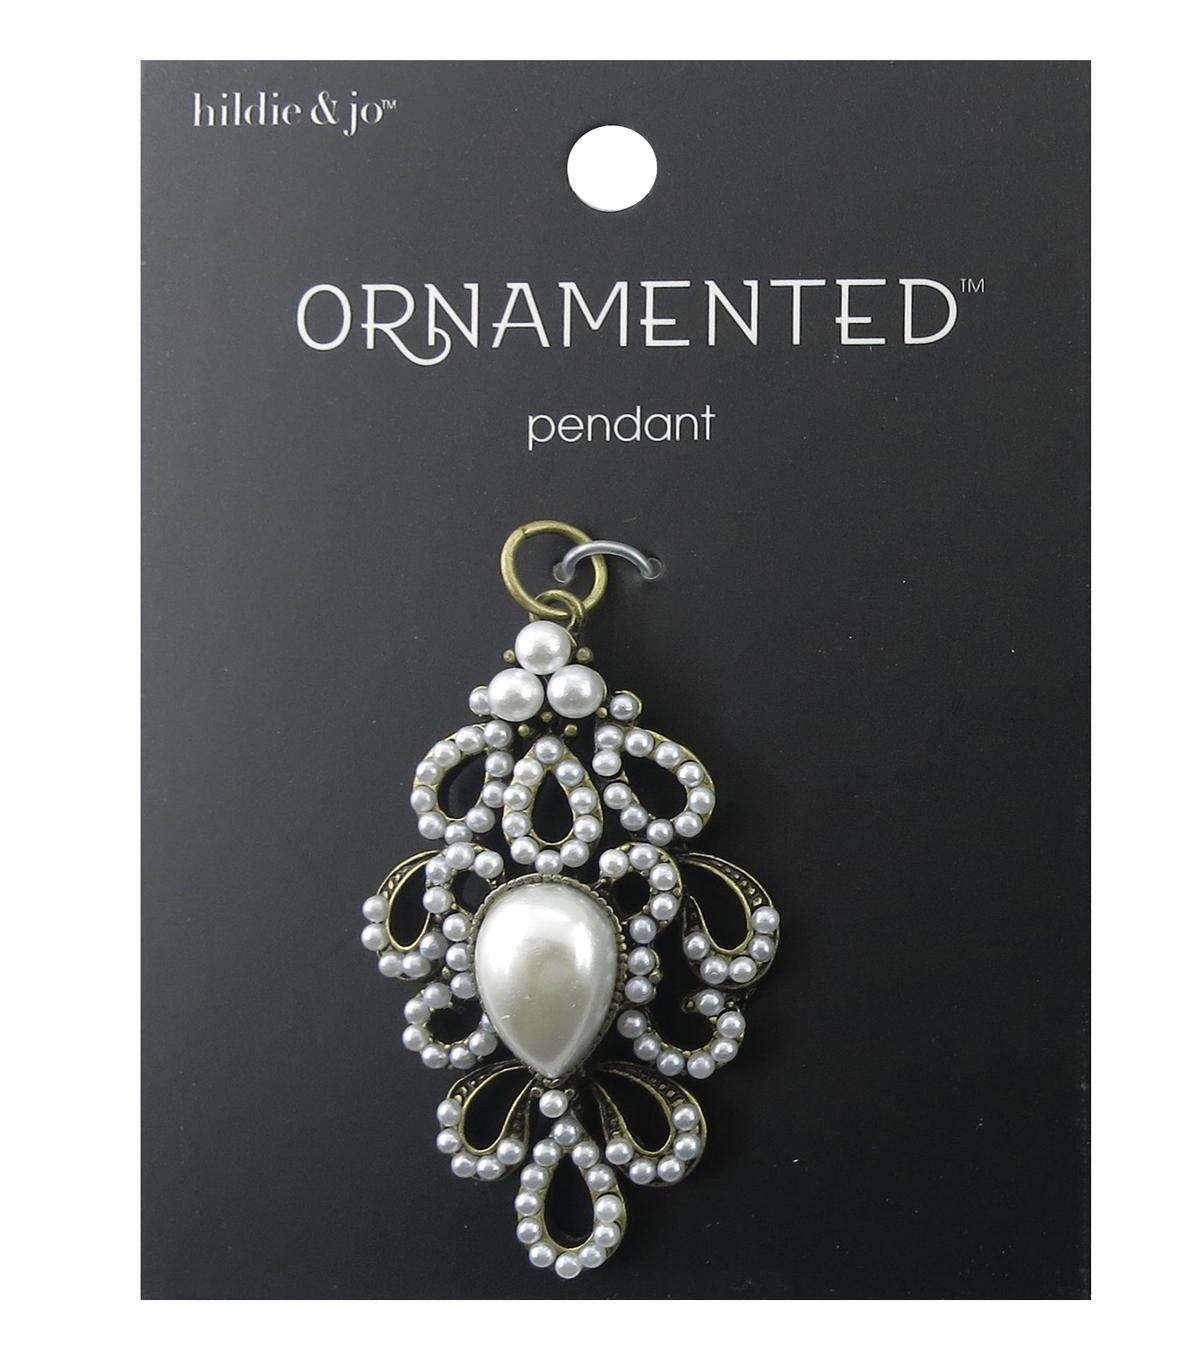 hildie & jo Ornamented 1.88\u0027\u0027x0.63\u0027\u0027 Antique Gold Pendant-Pearls